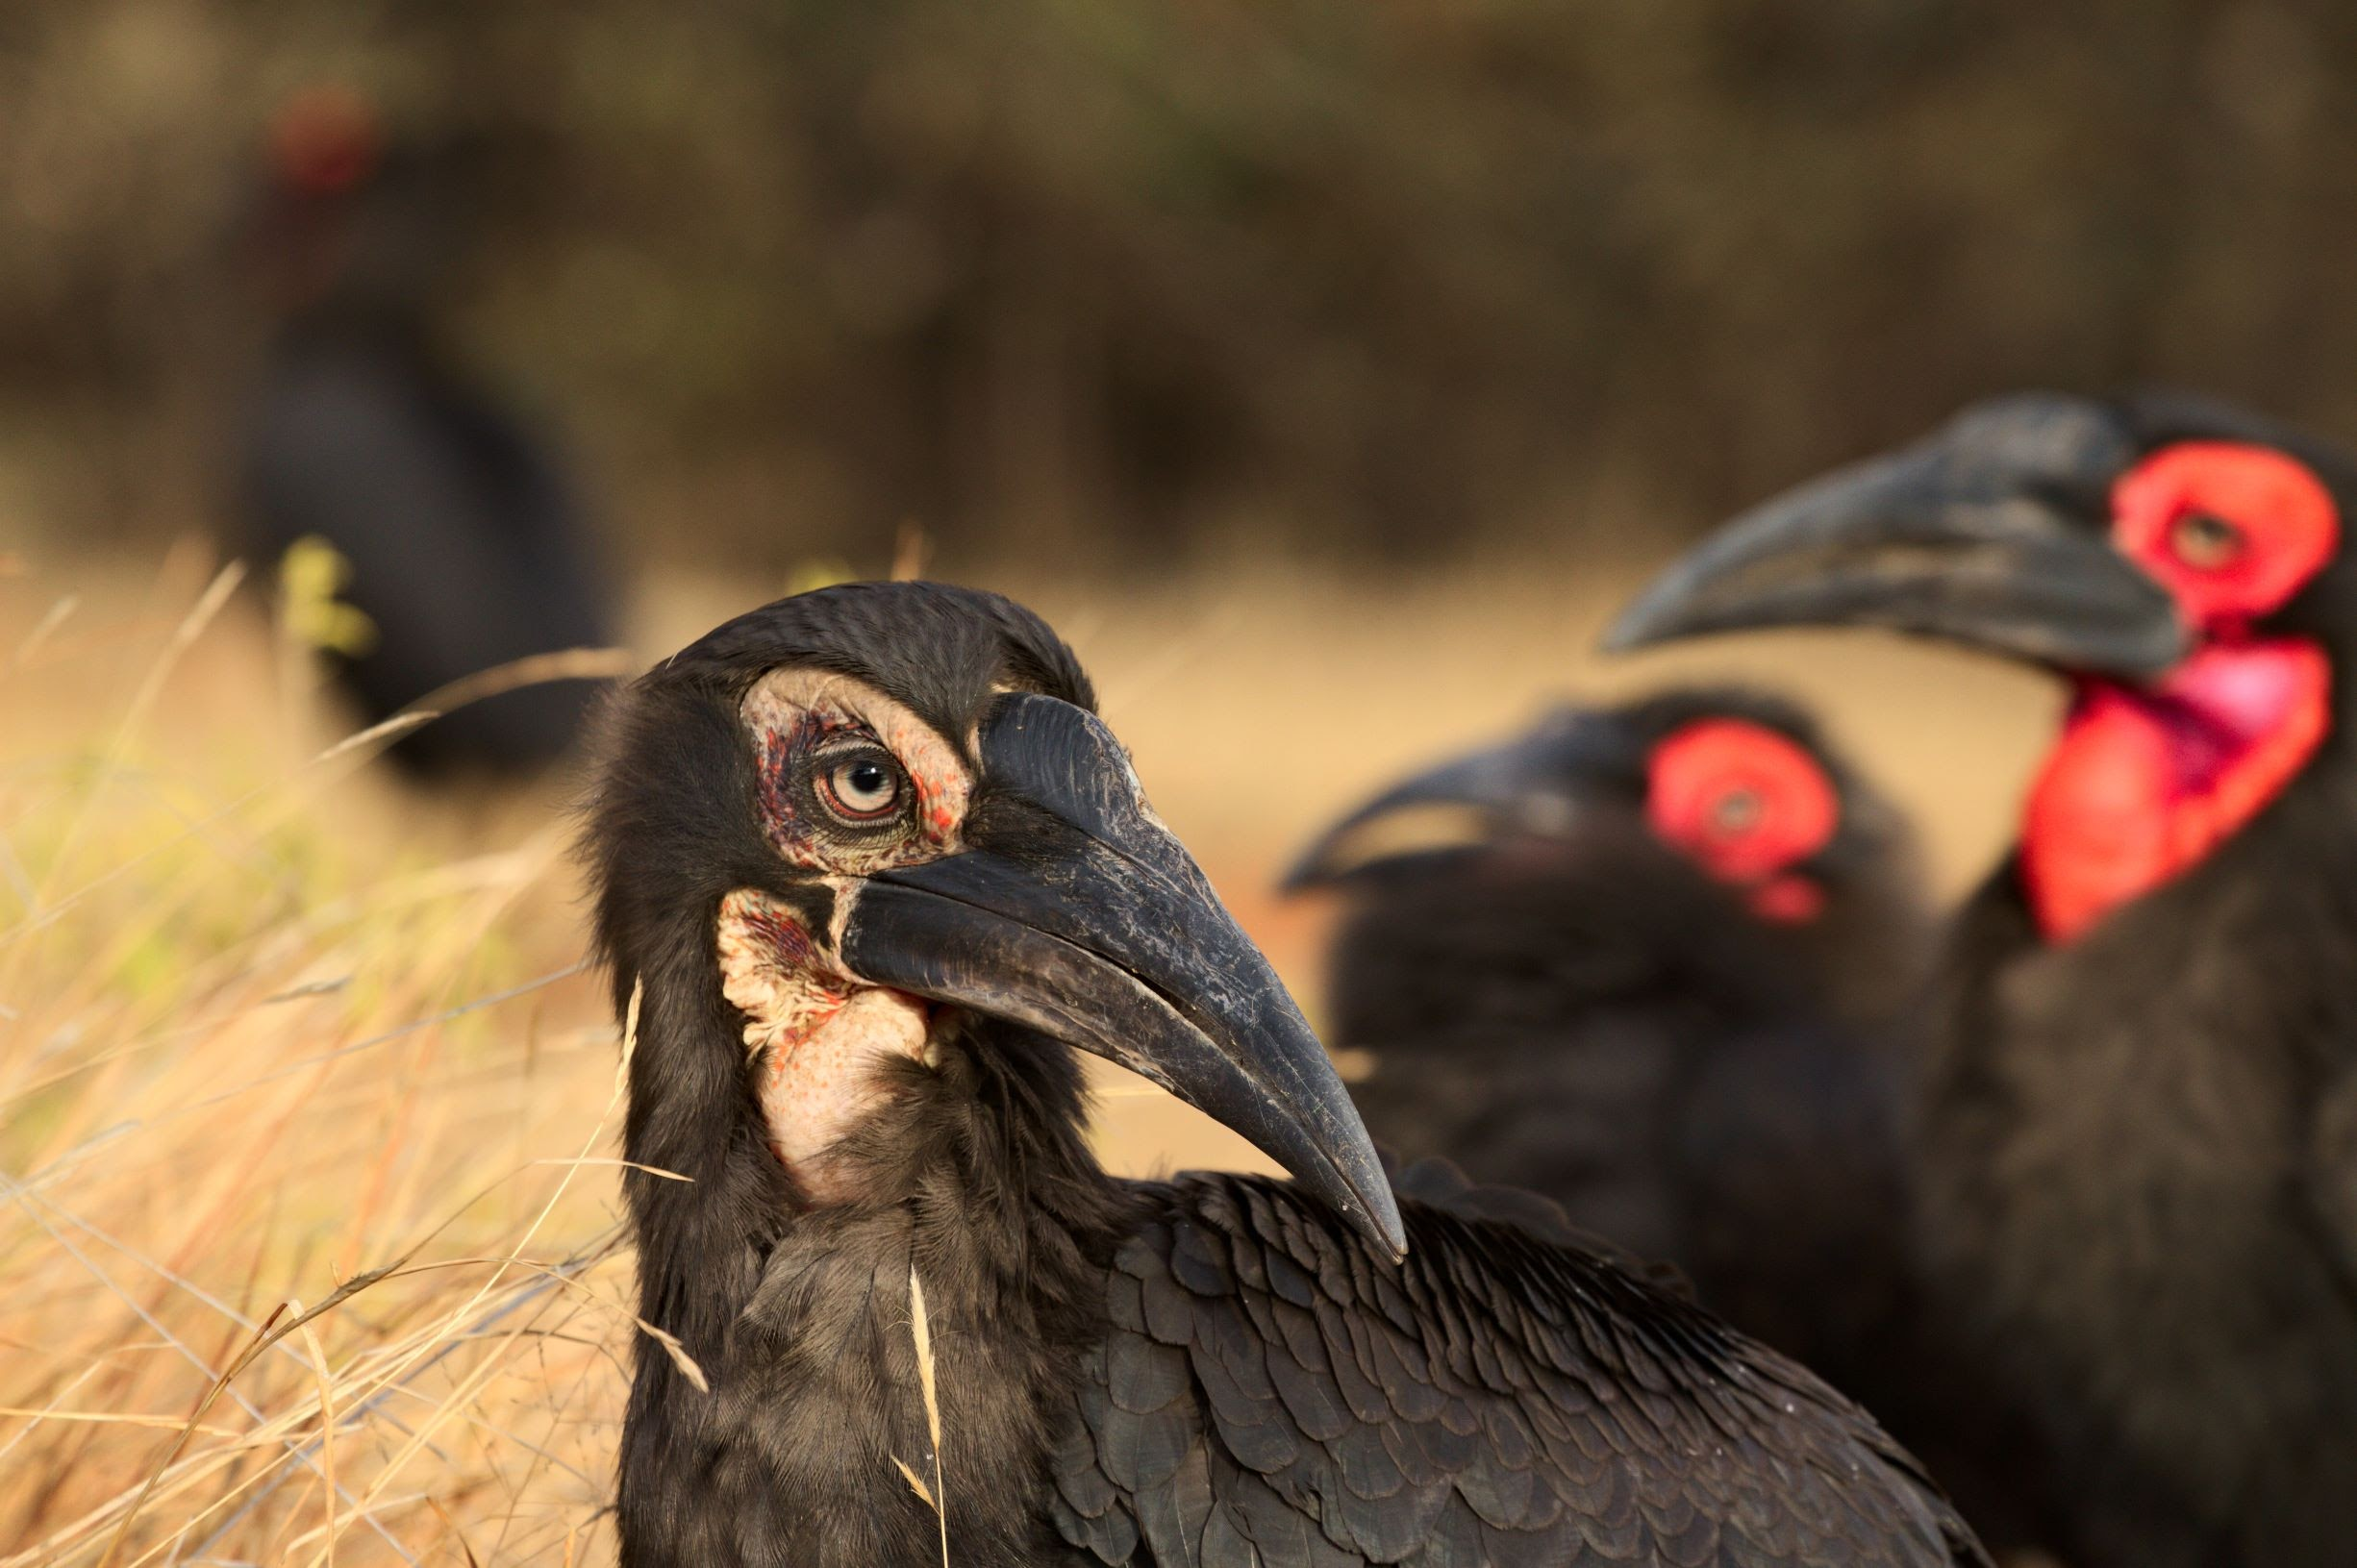 South African conservationist awarded for community approach to conserving the Southern Ground-hornbill